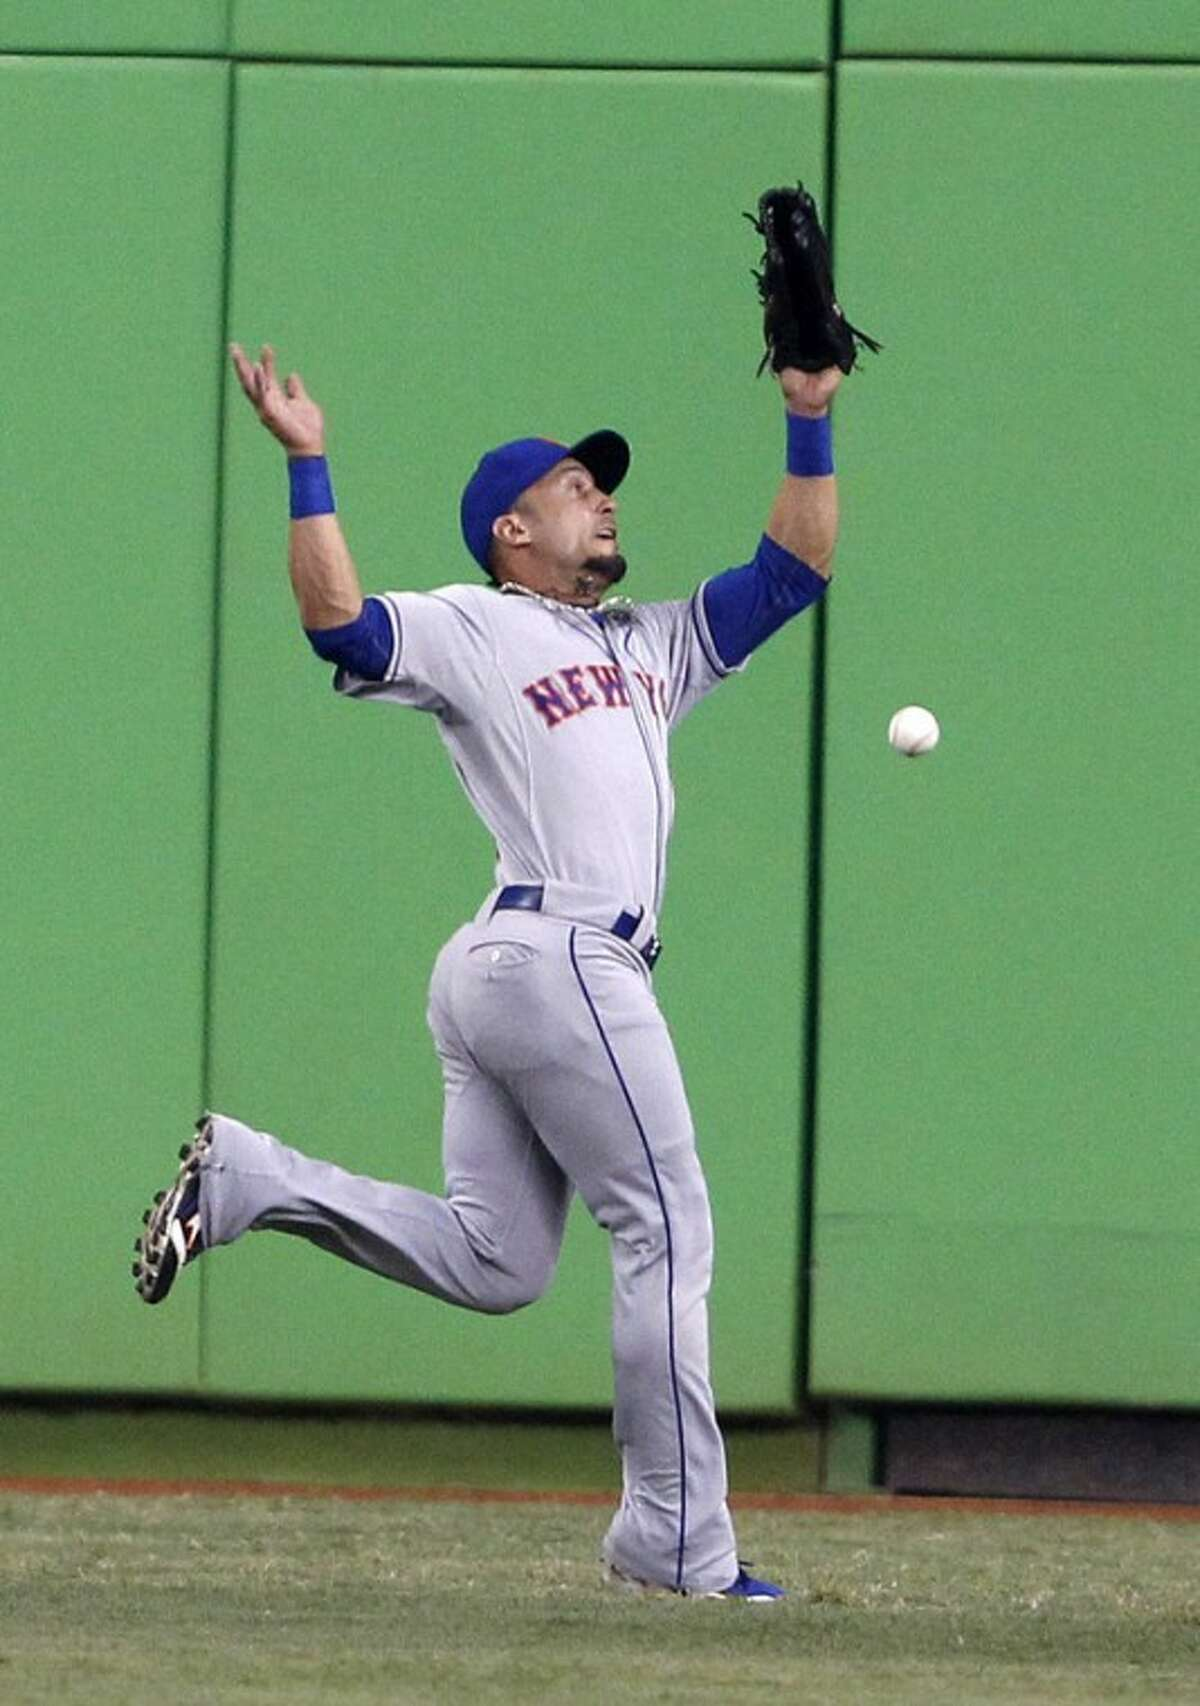 New York Mets center fielder Andres Torres is unable to catch a ball hit by Miami Marlins' Jose Reyes during the first inning of a baseball game on Friday, May 11, 2012, in Miami. Reyes had a triple on the play. (AP Photo/Wilfredo Lee)